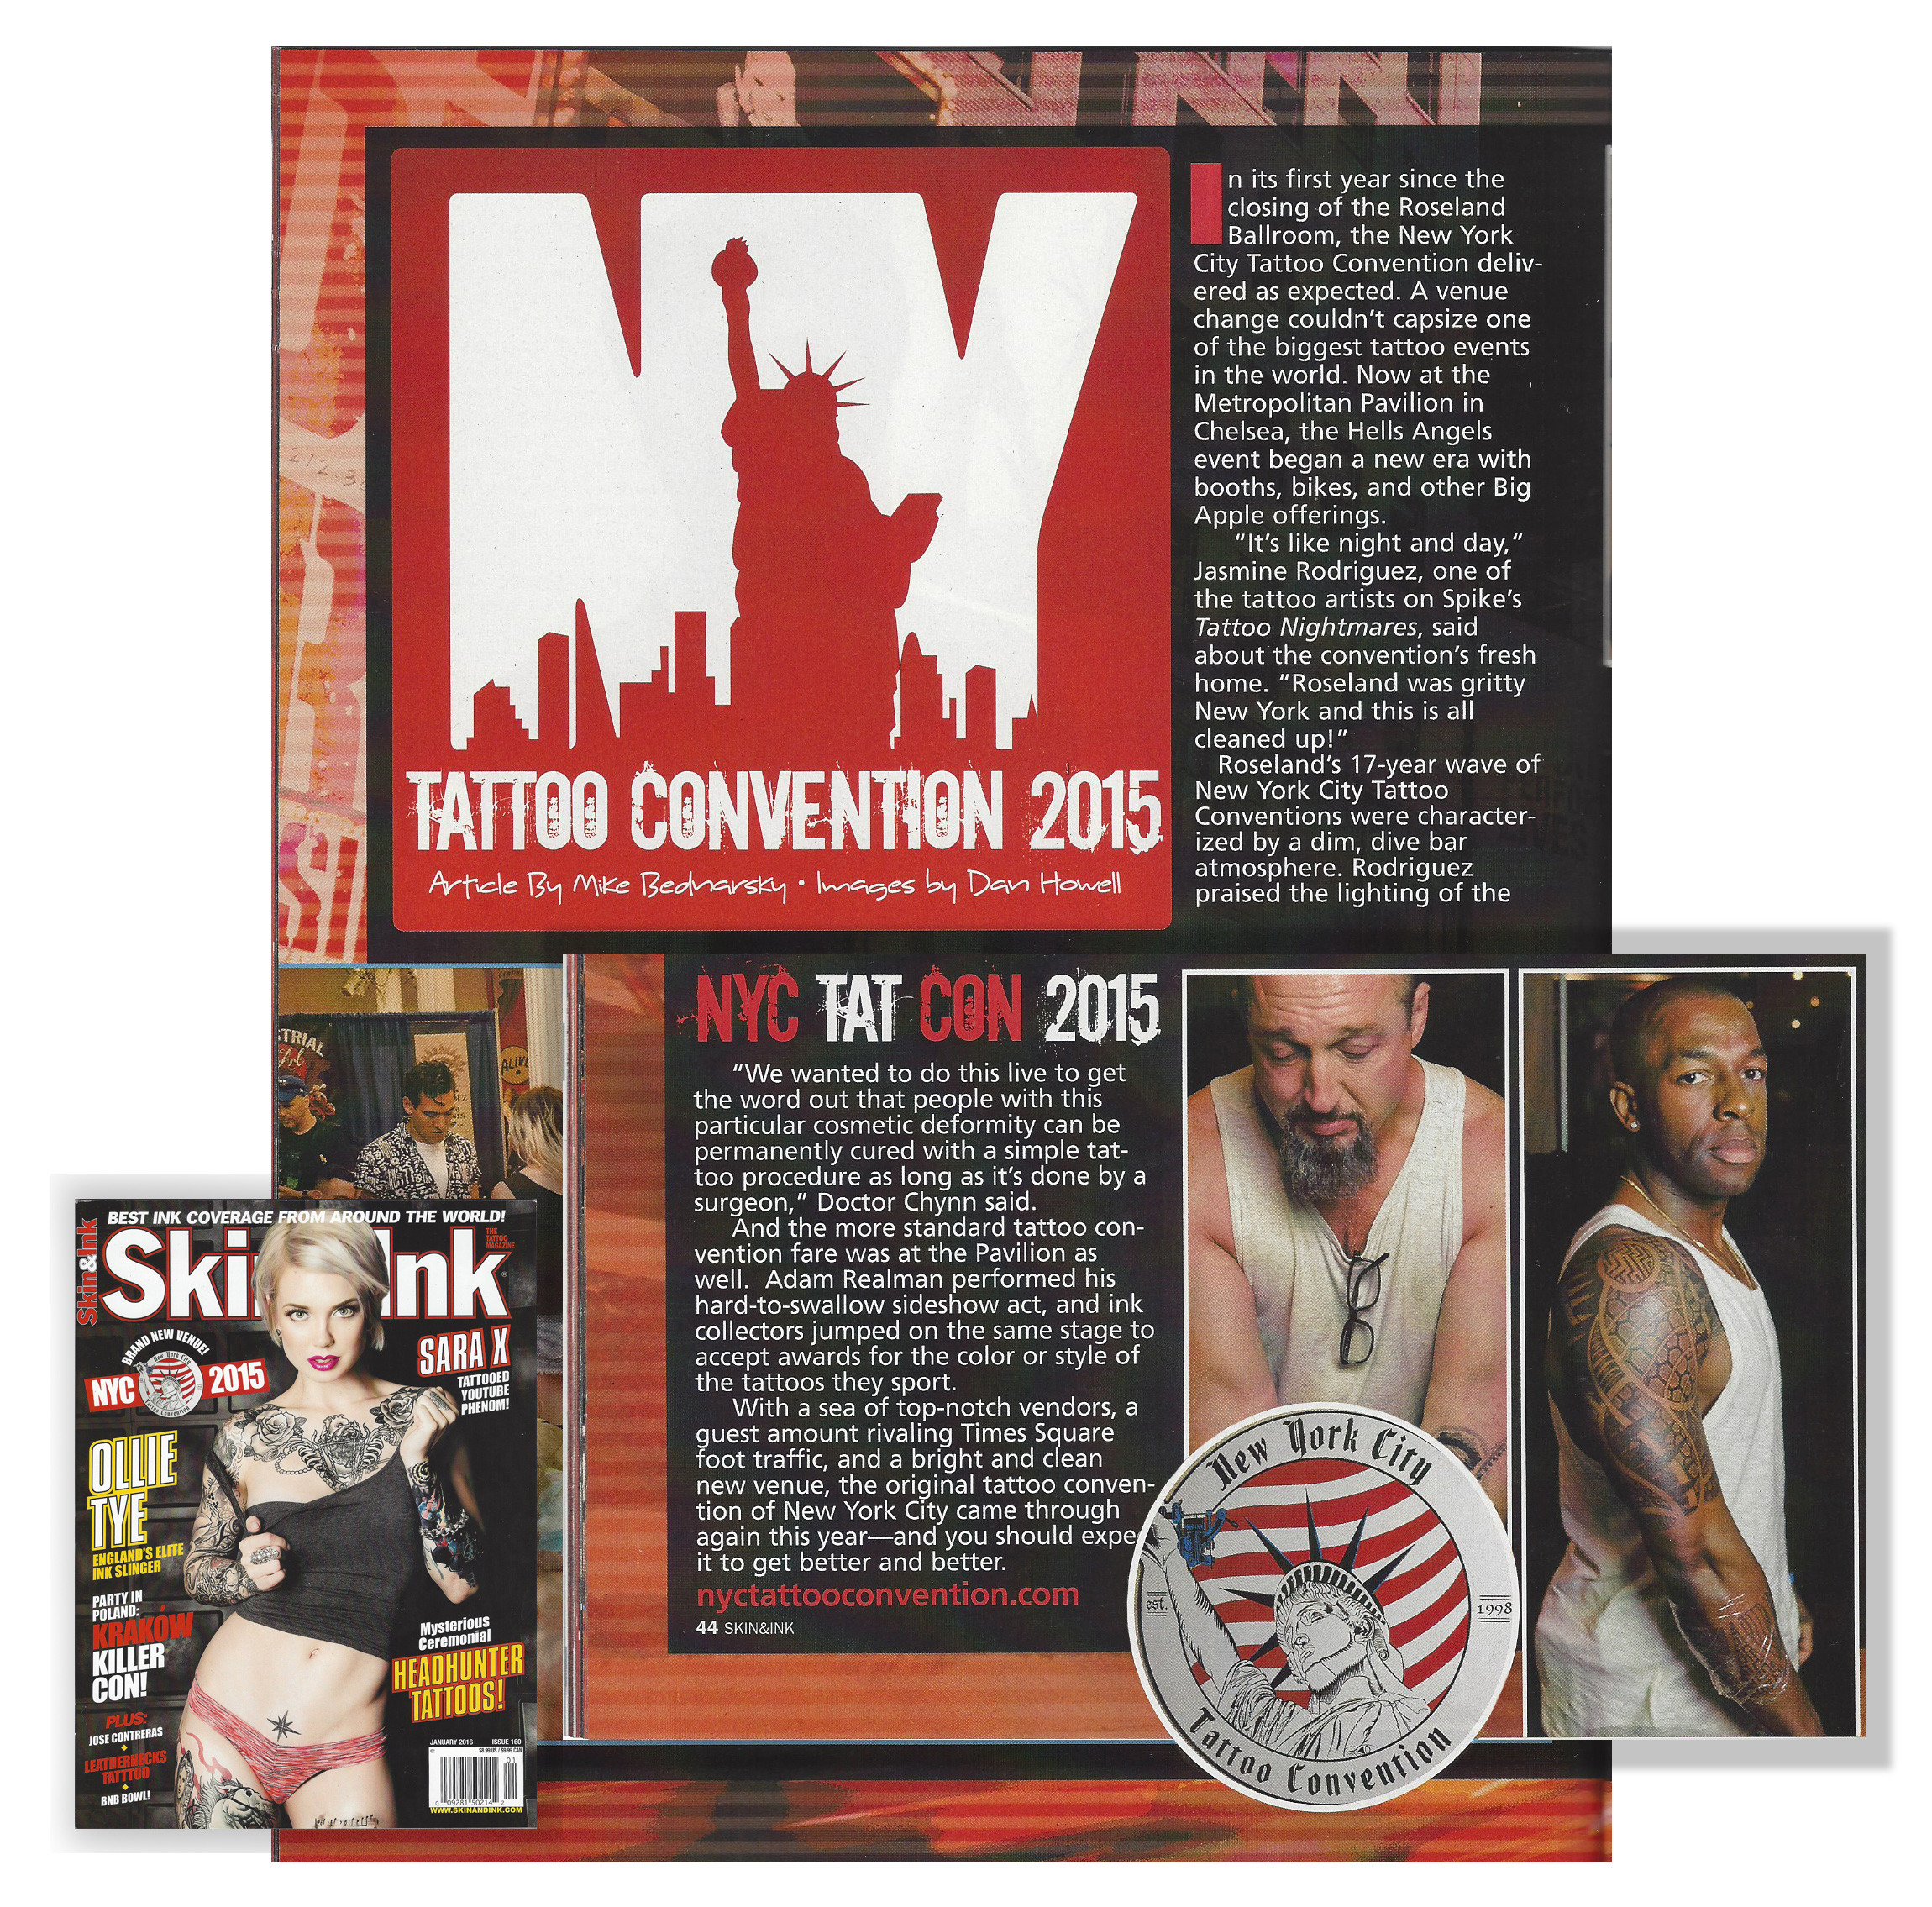 Featured at American Skin & Ink Magazine covering the NYC Tattoo Convention 2015 which João Paulo Rodrigues won the 1st Place Award for Best Overall Tattooed Person